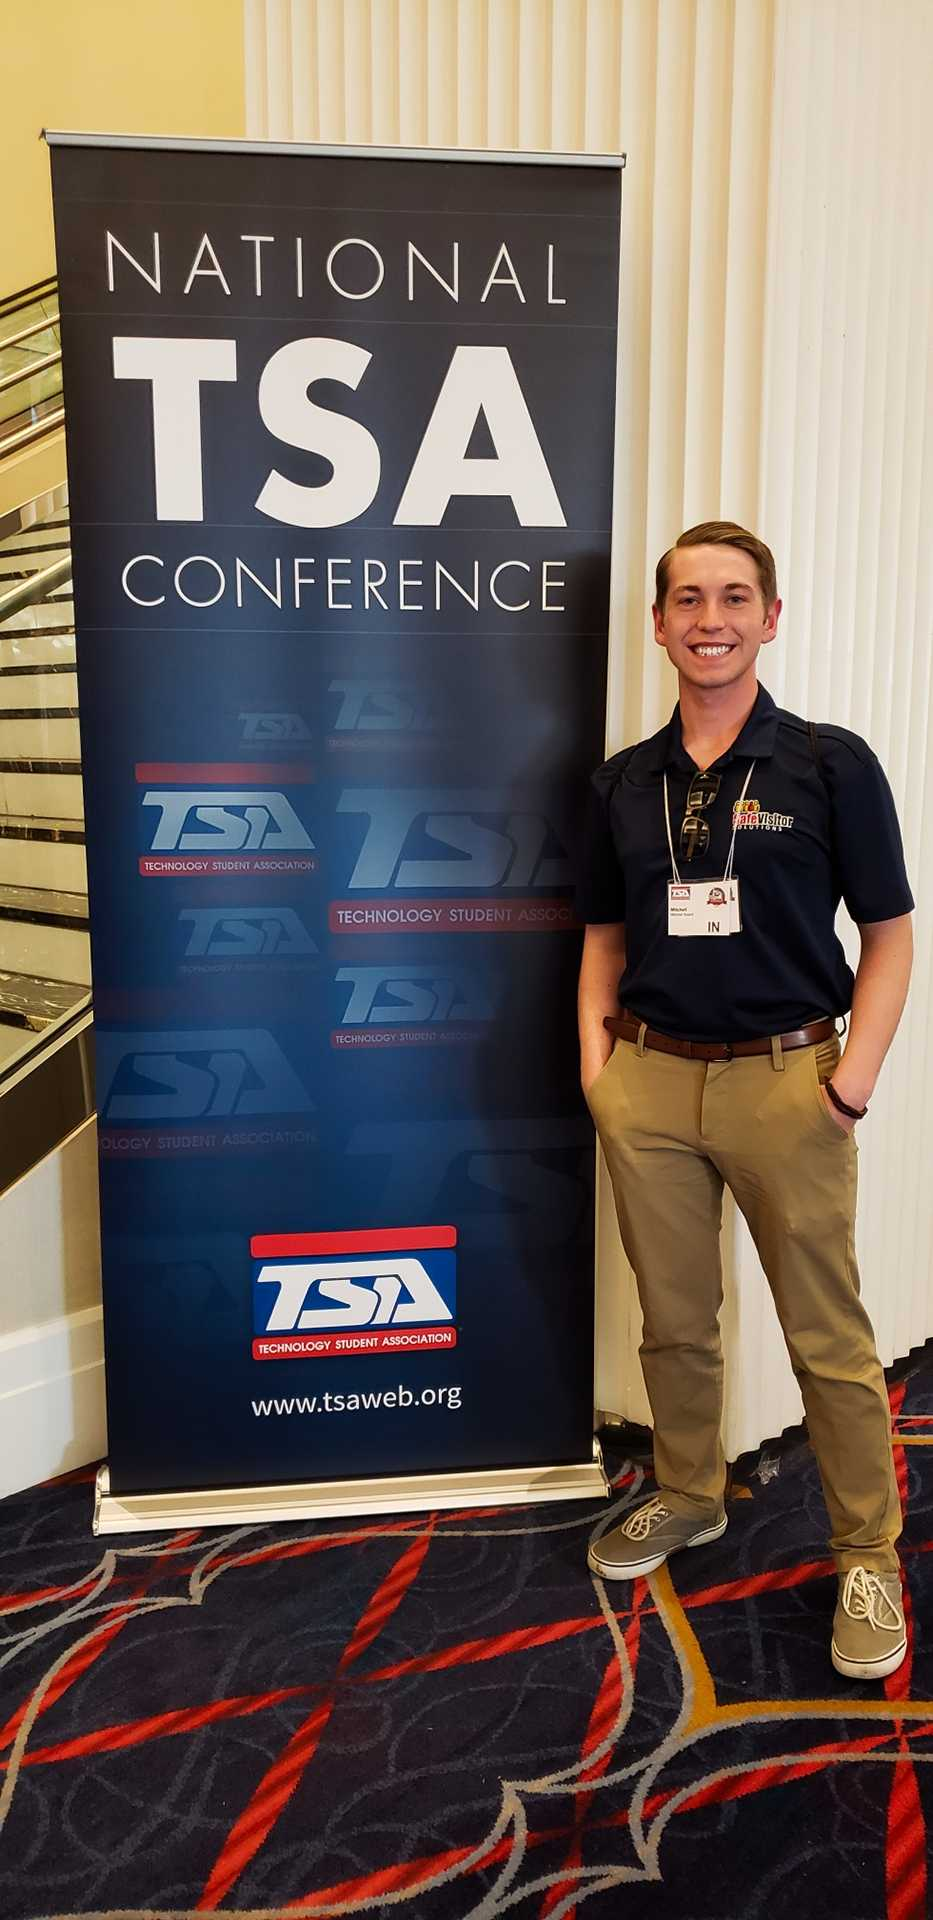 Mitchell at the nation Technology Student Association conference in D.C.